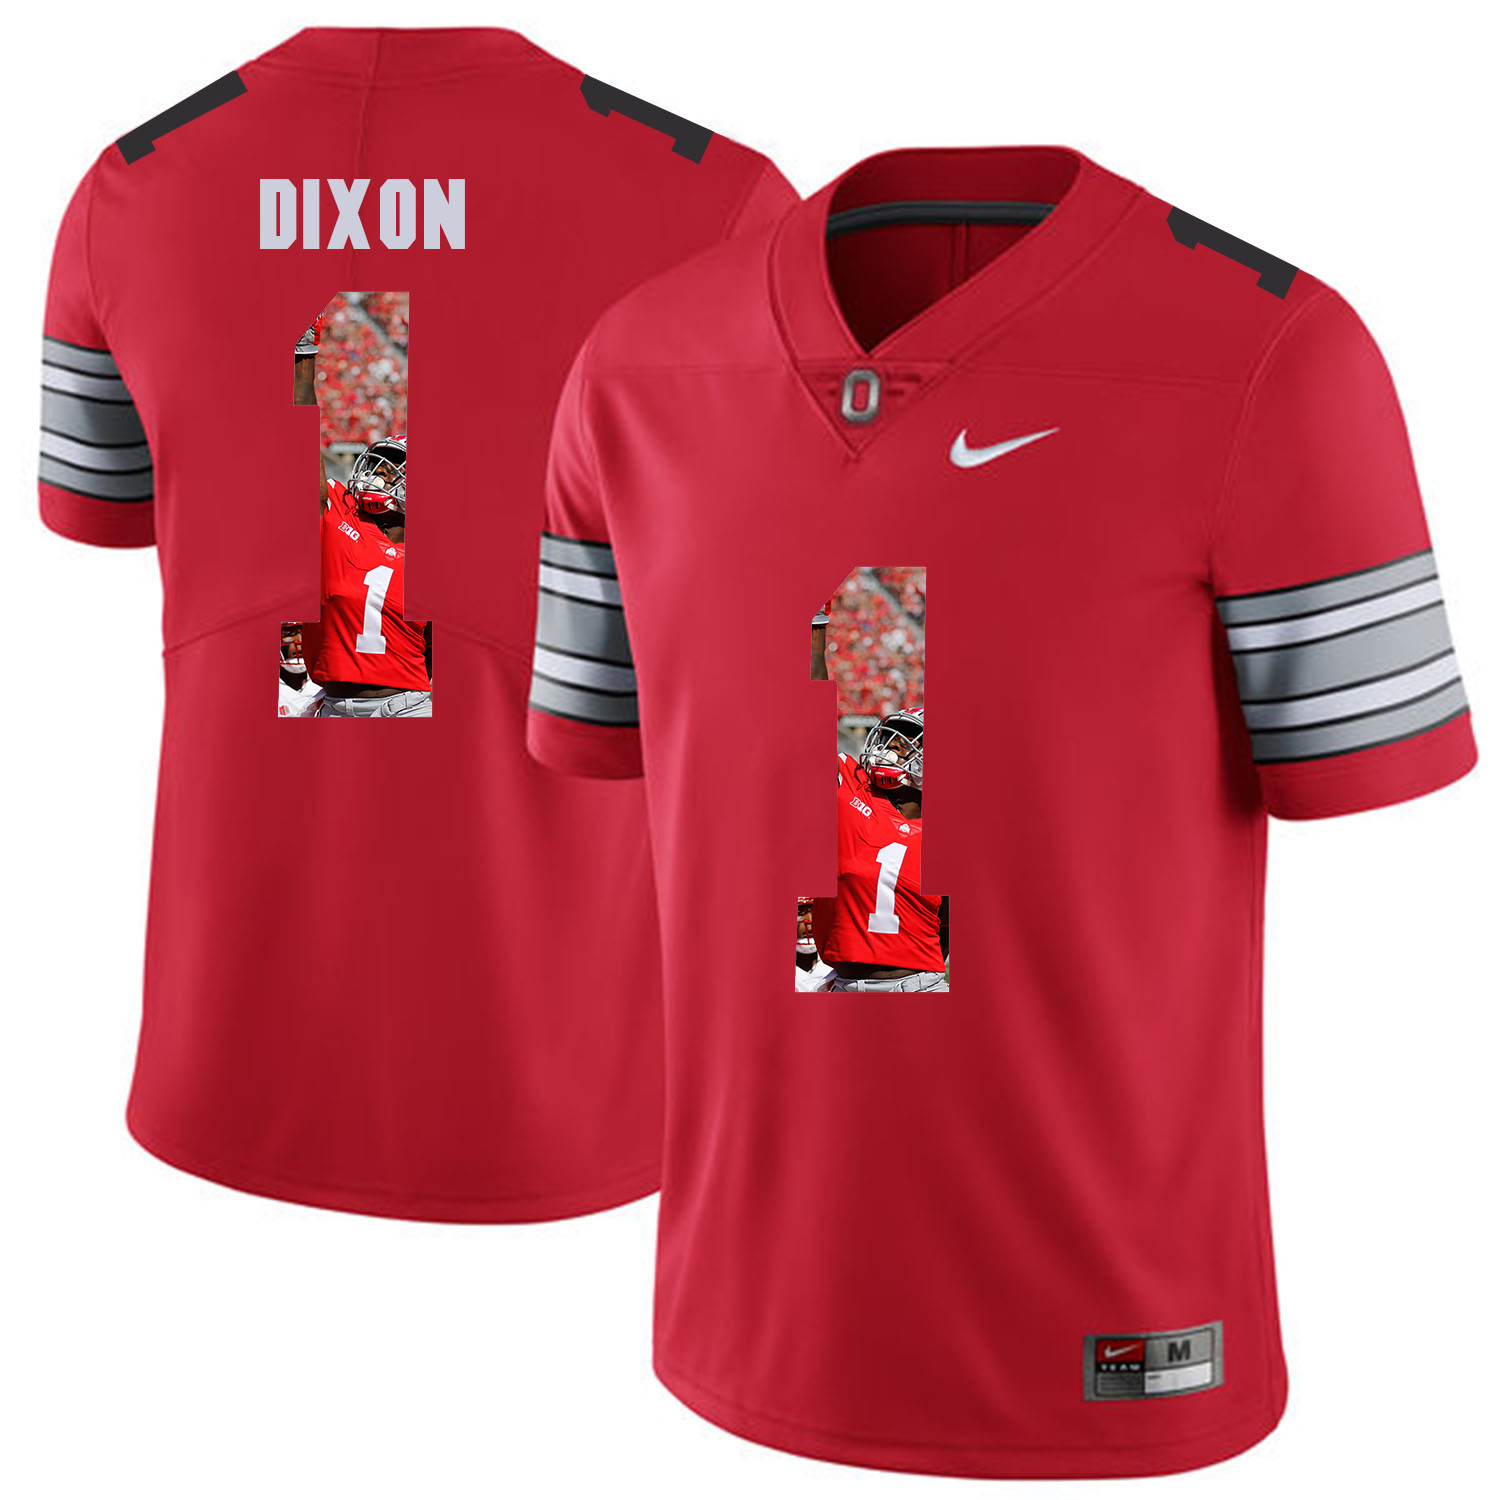 Men Ohio State 1 Dixon Red Fashion Edition Customized NCAA Jerseys